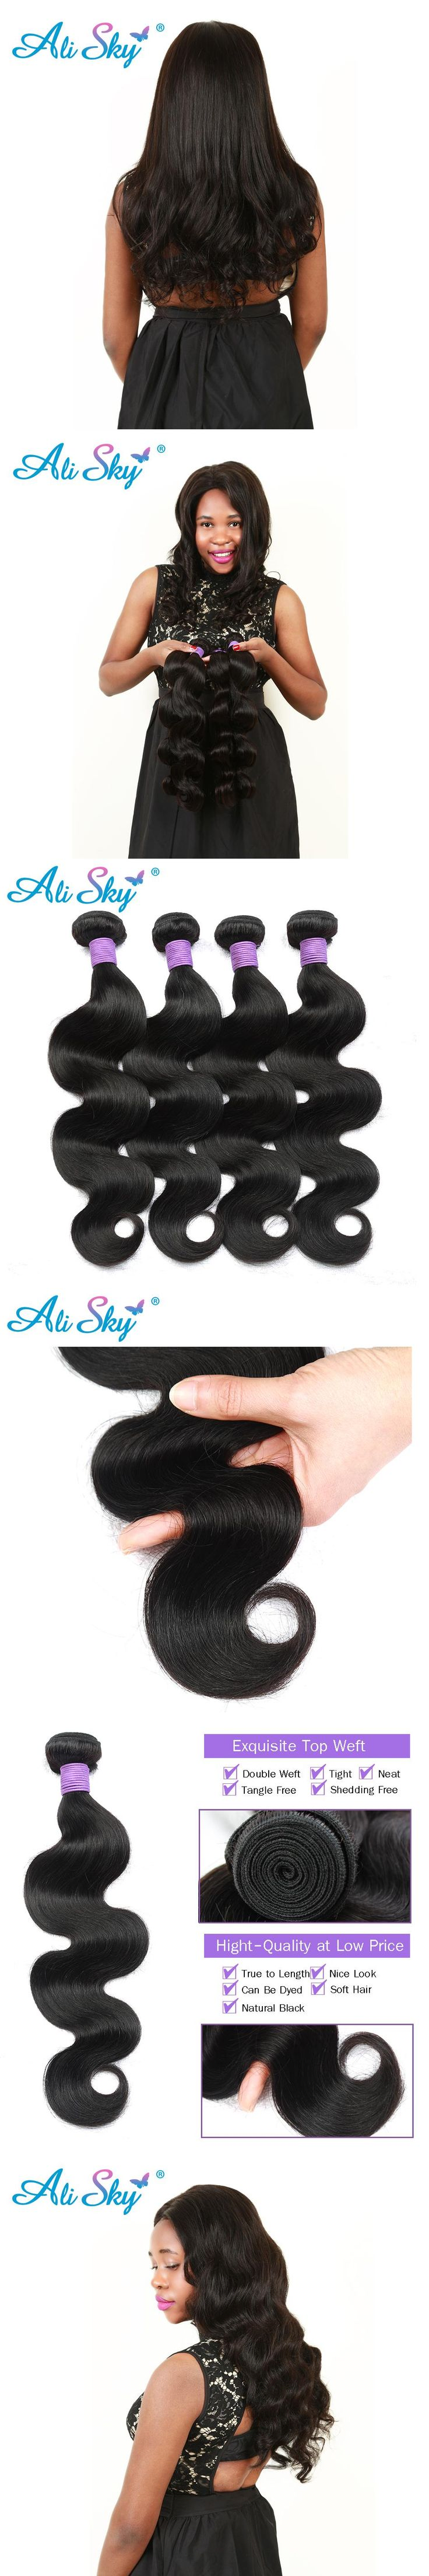 "Ali Sky Hair Peruvian nonremy Hair Body Wave 8""-26"" 1pc Human Hair Bundles Weave Natural Color 1B# for Black Women Can Be Curled"